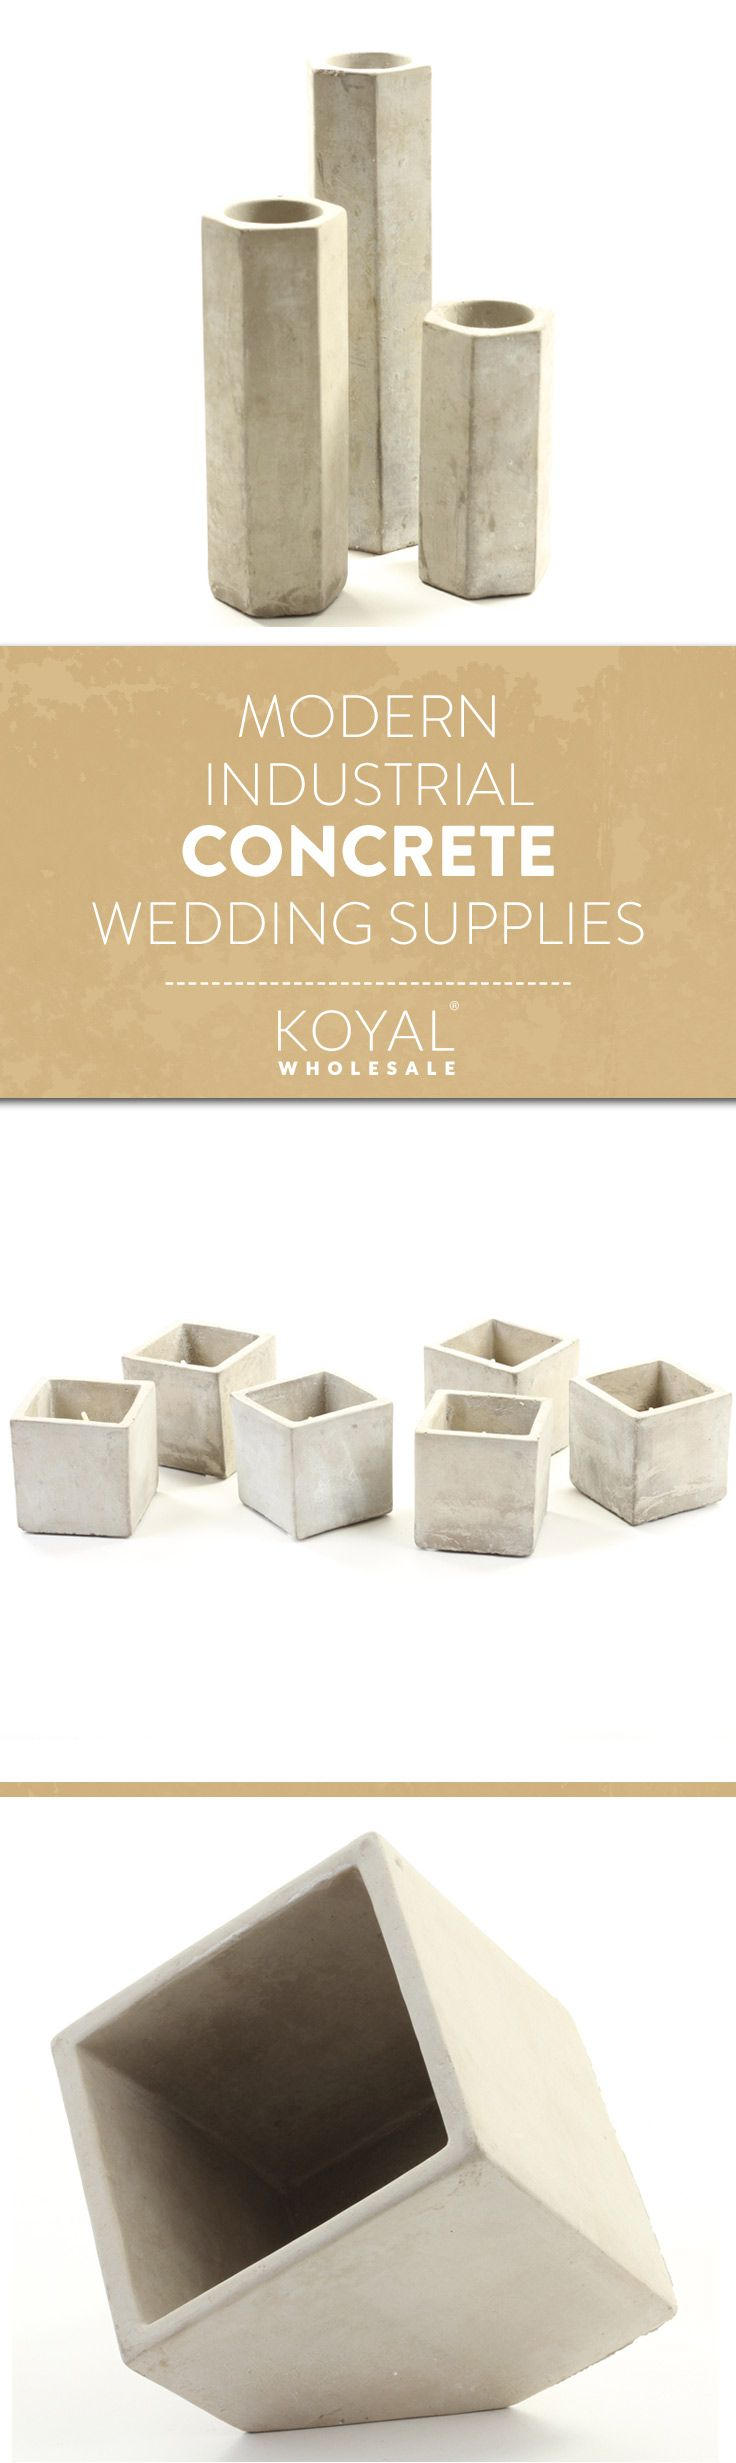 Modern Industrial Concrete Wedding Supplies by KOYAL WHOLESALE  Wholesale Wedding & Special Event Supplies | Free Shipping Over $99+  Wedding Decorations & Centerpieces Vases, Charger Plates, Candle Holders, and More.